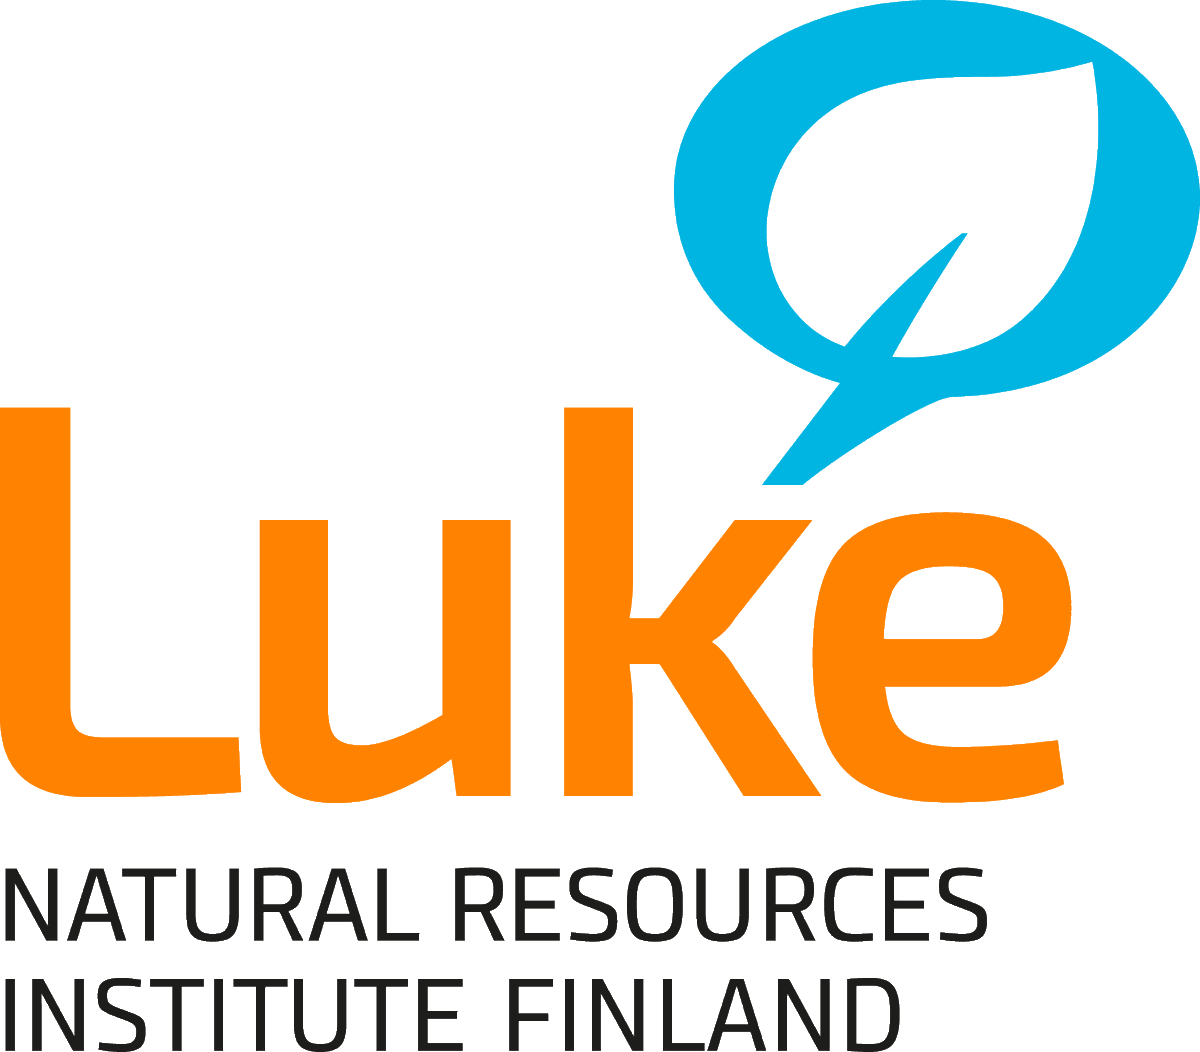 🌈Having trouble to raise rainbow trout in the #Baltic Sea ? #Copernicus has the solution ! The Natural Resource Institute Finland (Luke) has used @CMEMS_EU data to build an ecosystem approach for aquaculture. 🎣 Learn how here 👉 bit.ly/2V06i70